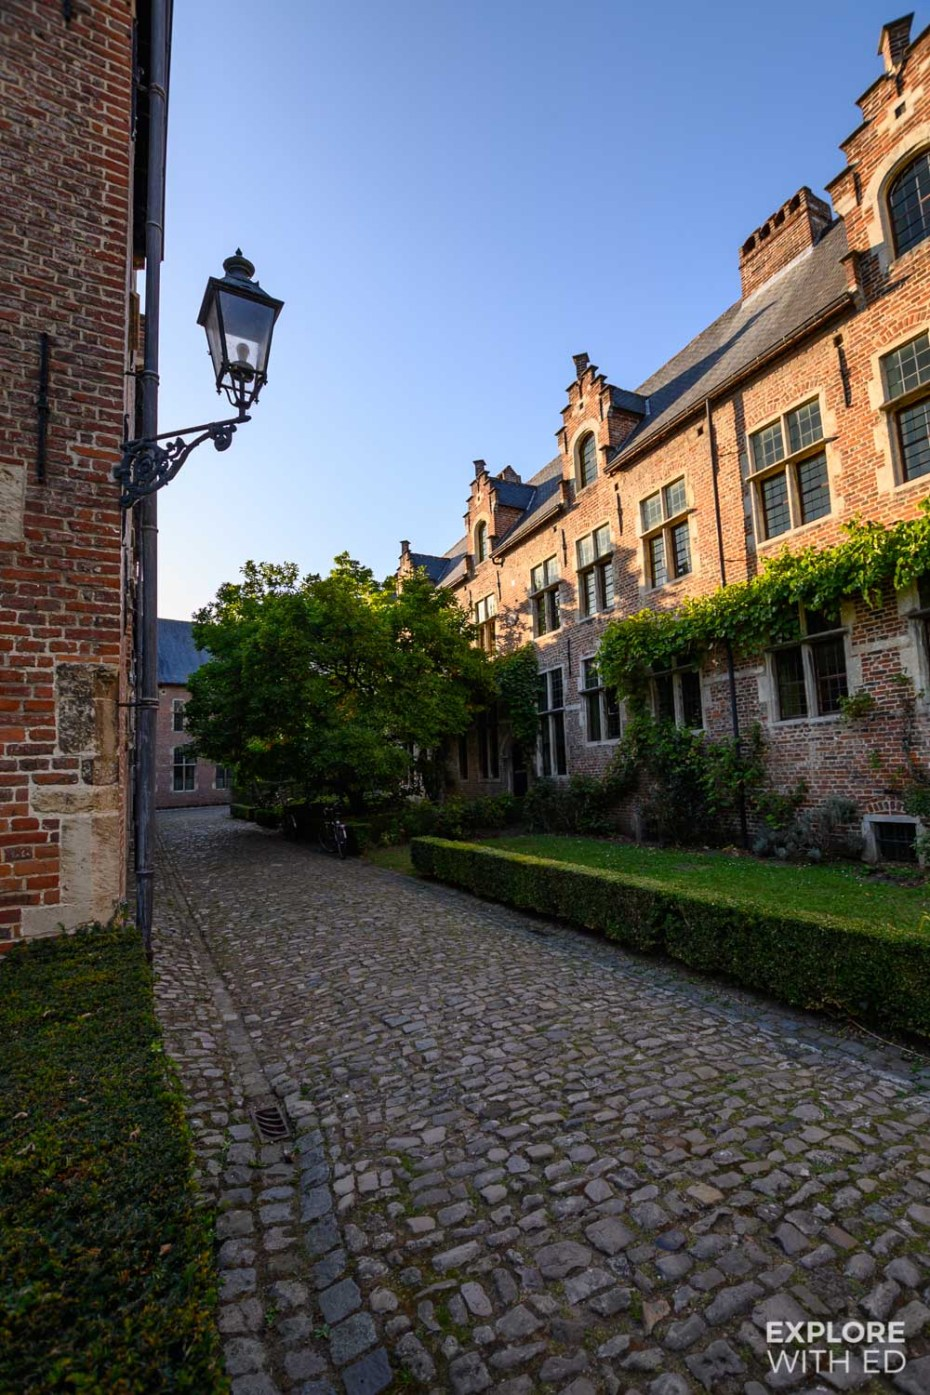 The Great Beguinage (Groot Begijnhof) in Leuven, Belgium